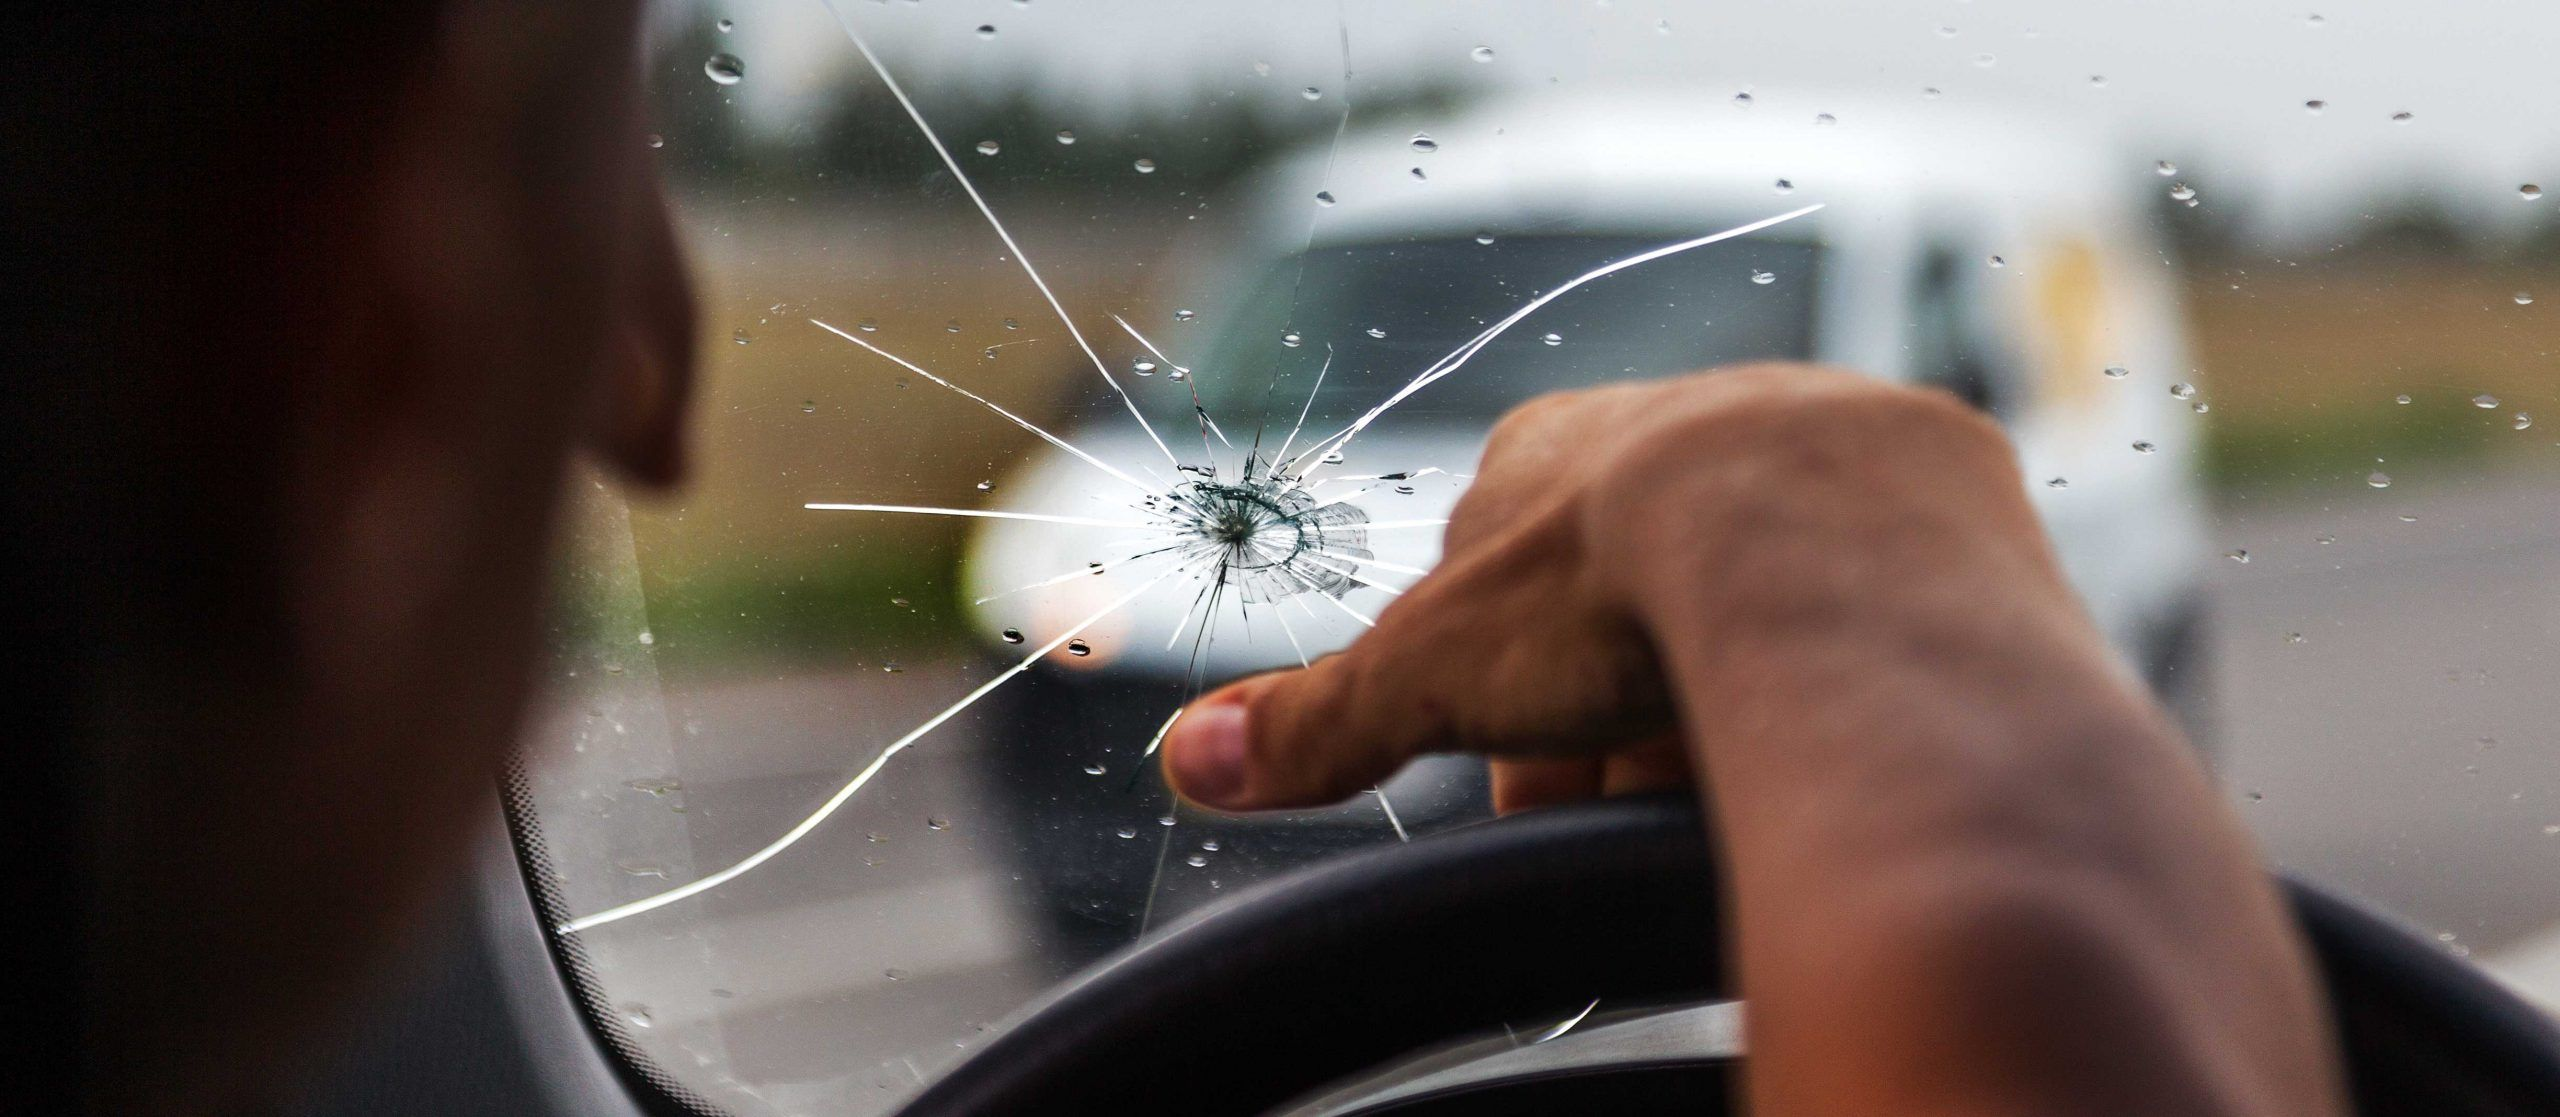 Cracked windshield can lead to a violation